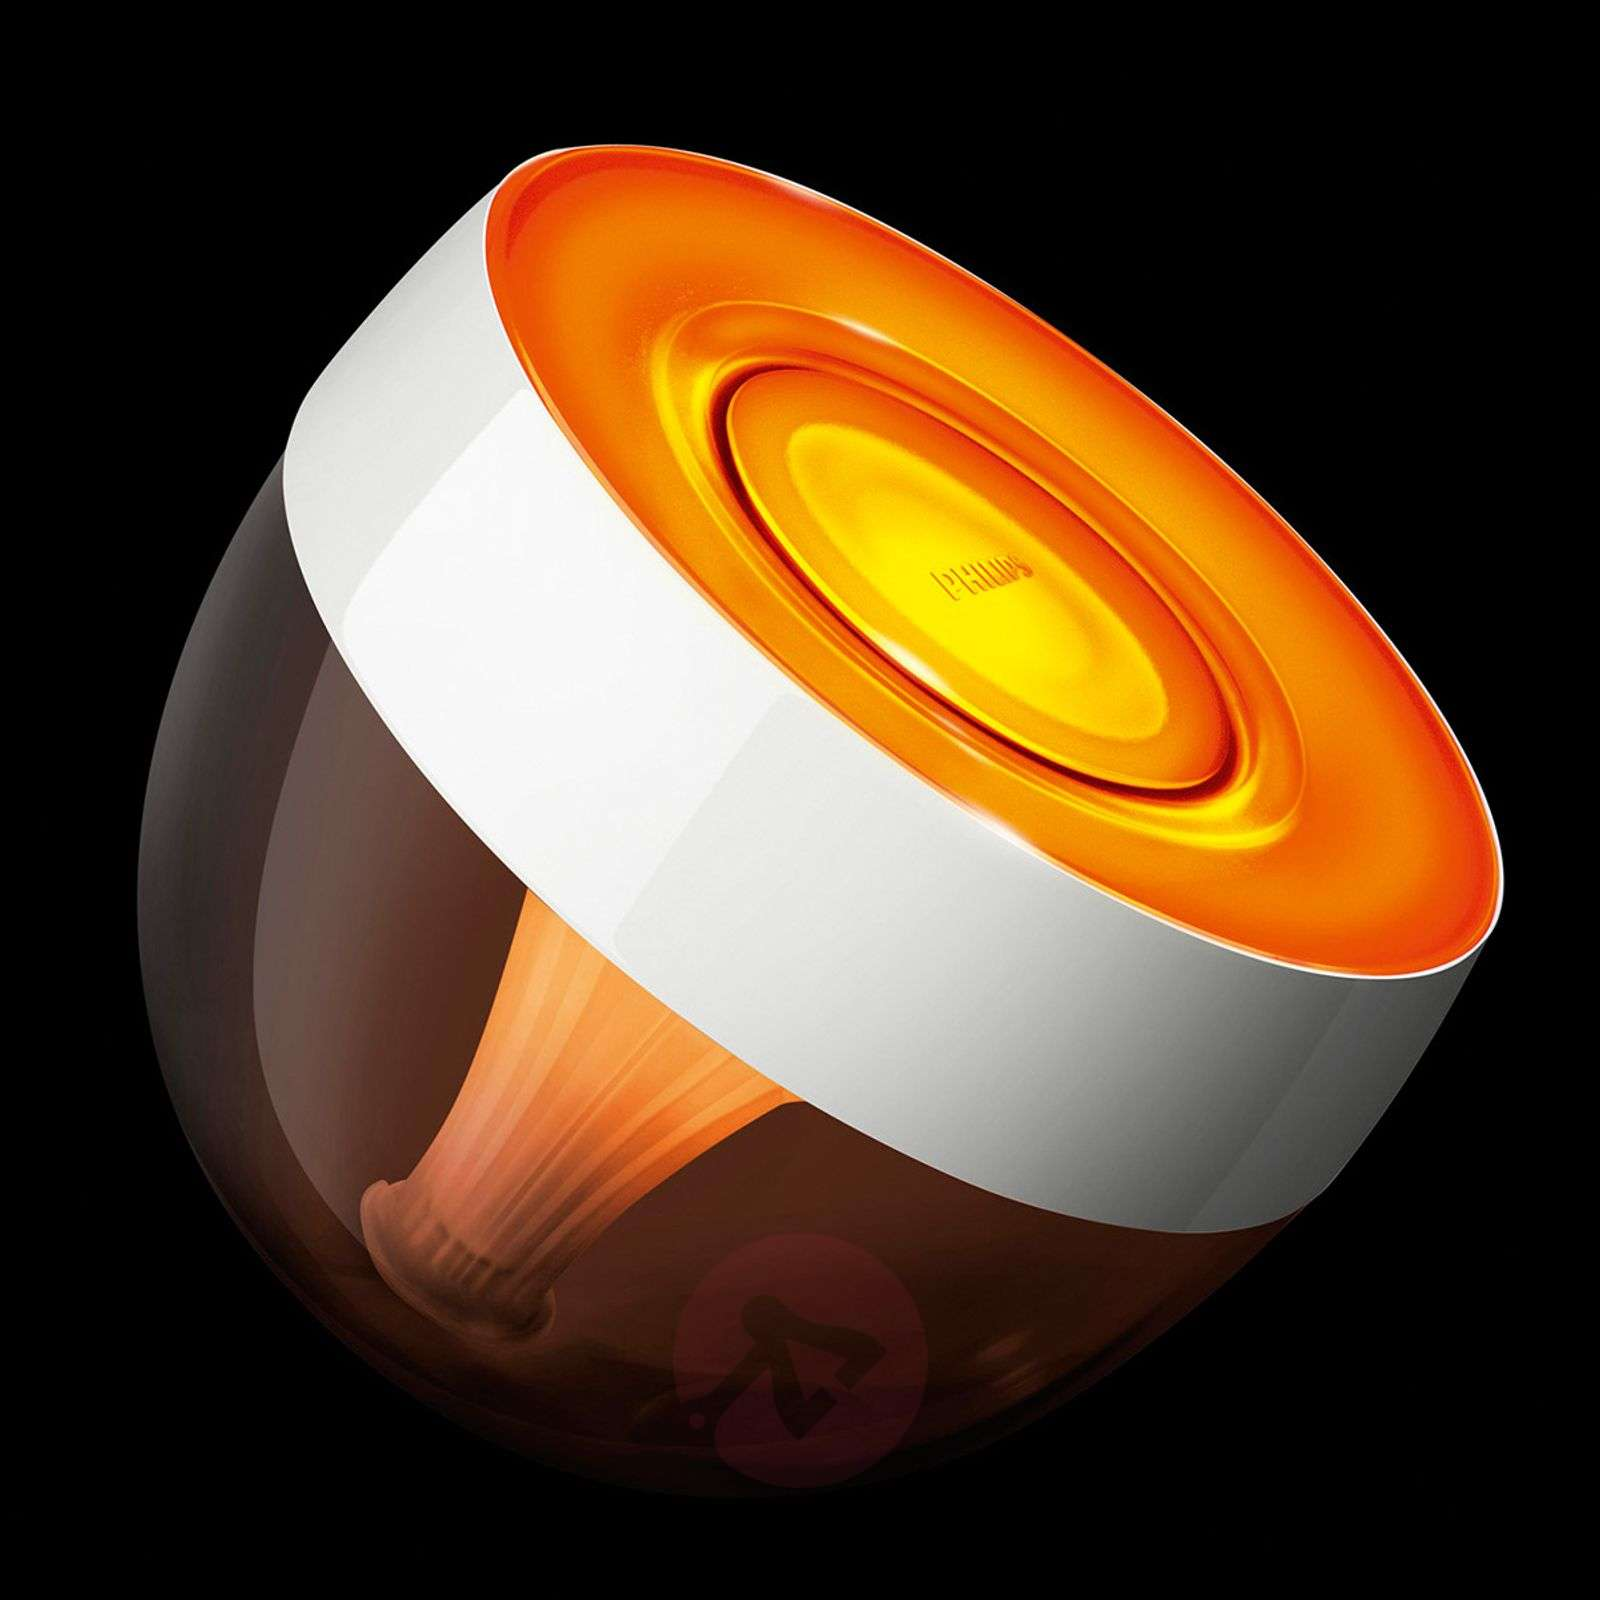 Philips Hue LivingColors Iris-7531591-01